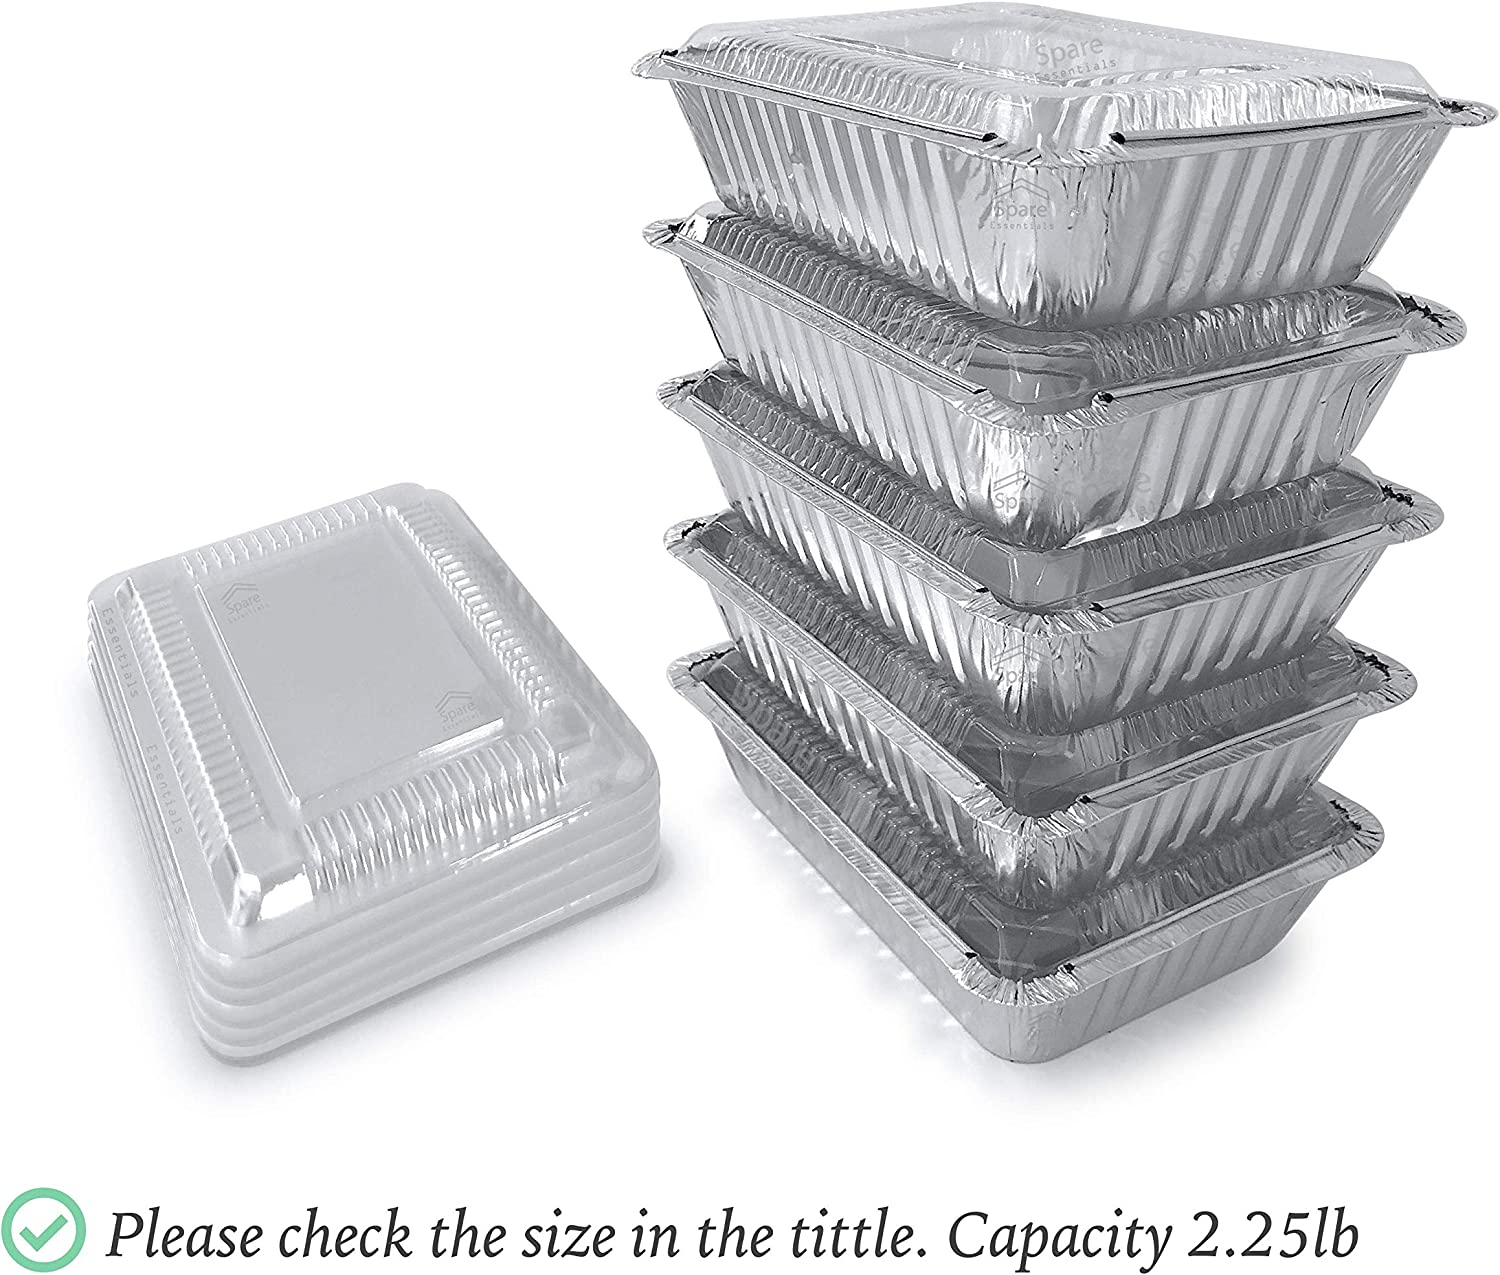 """55Pack - 2.25 LB Aluminum Foil Pan/Food Containers/With Plastic Lids I Disposable Aluminum Pans I Foil Food Trays From Spare 2.25 Lb Capacity 8.5""""x6""""x1.5"""" BIG Size"""